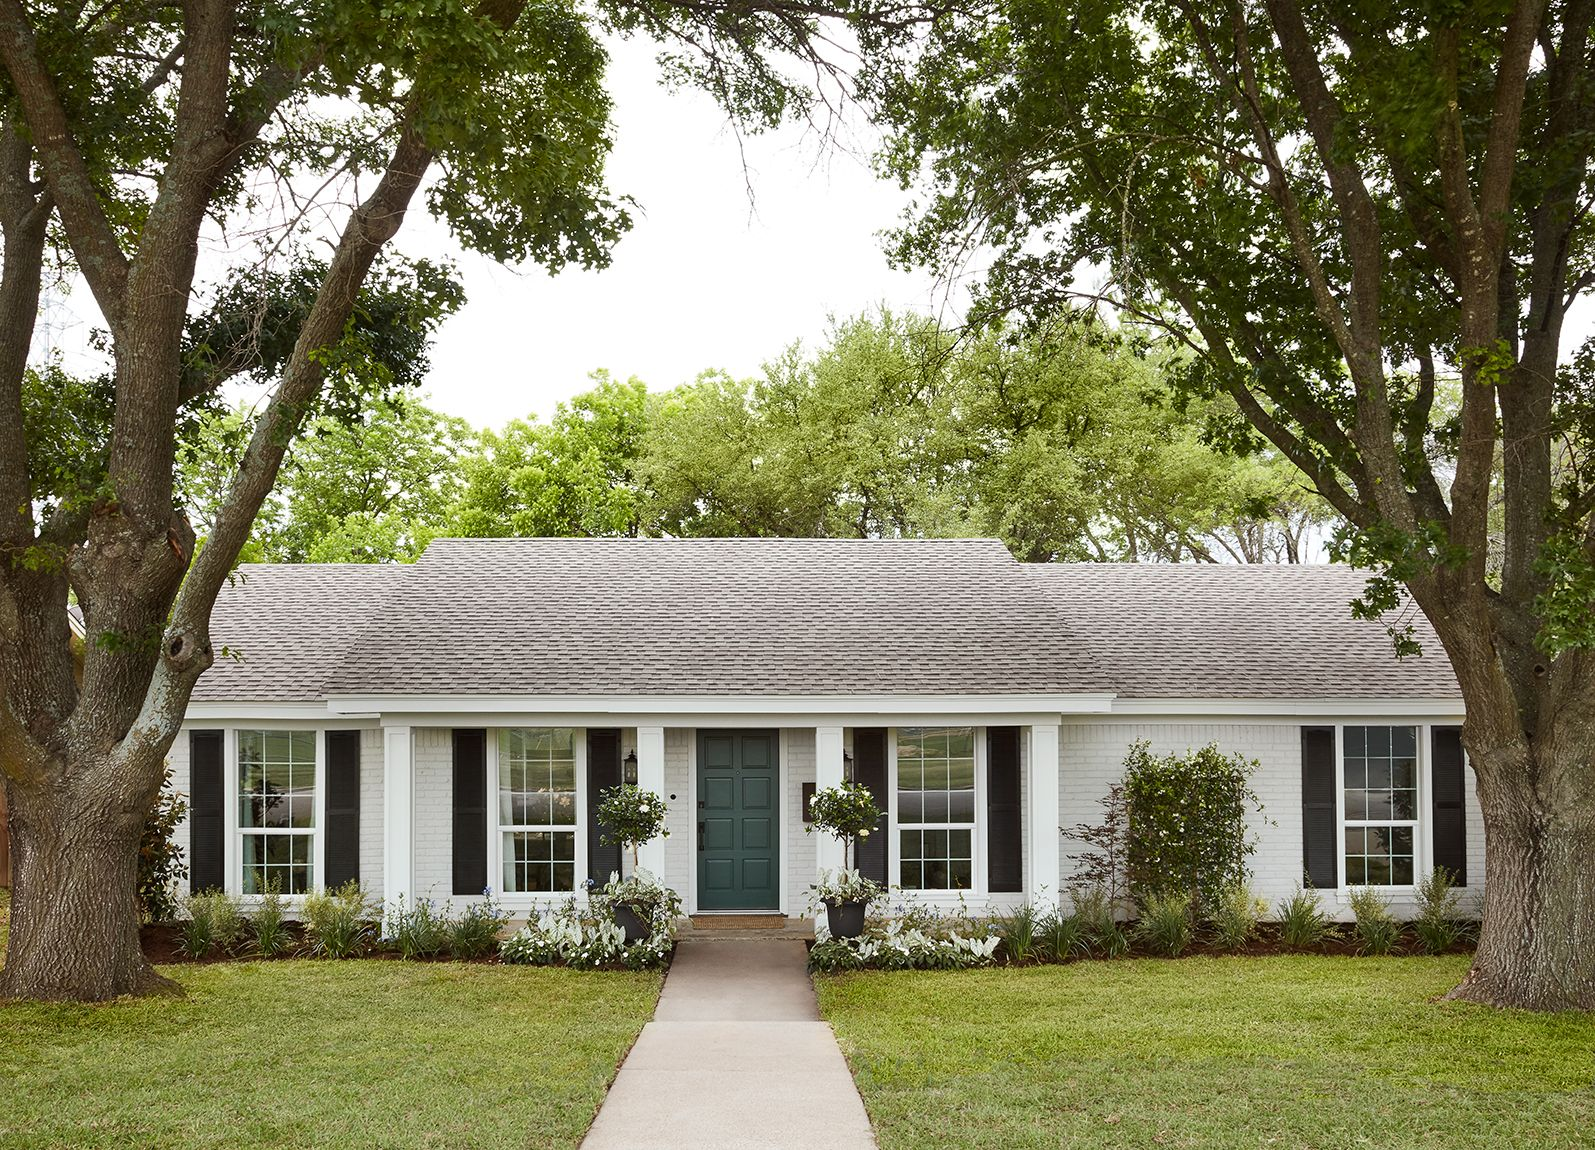 Episode 8 Season 5 Hgtv S Fixer Upper Chip Jo Gaines Ranch House Exterior Home Exterior Makeover House Exterior